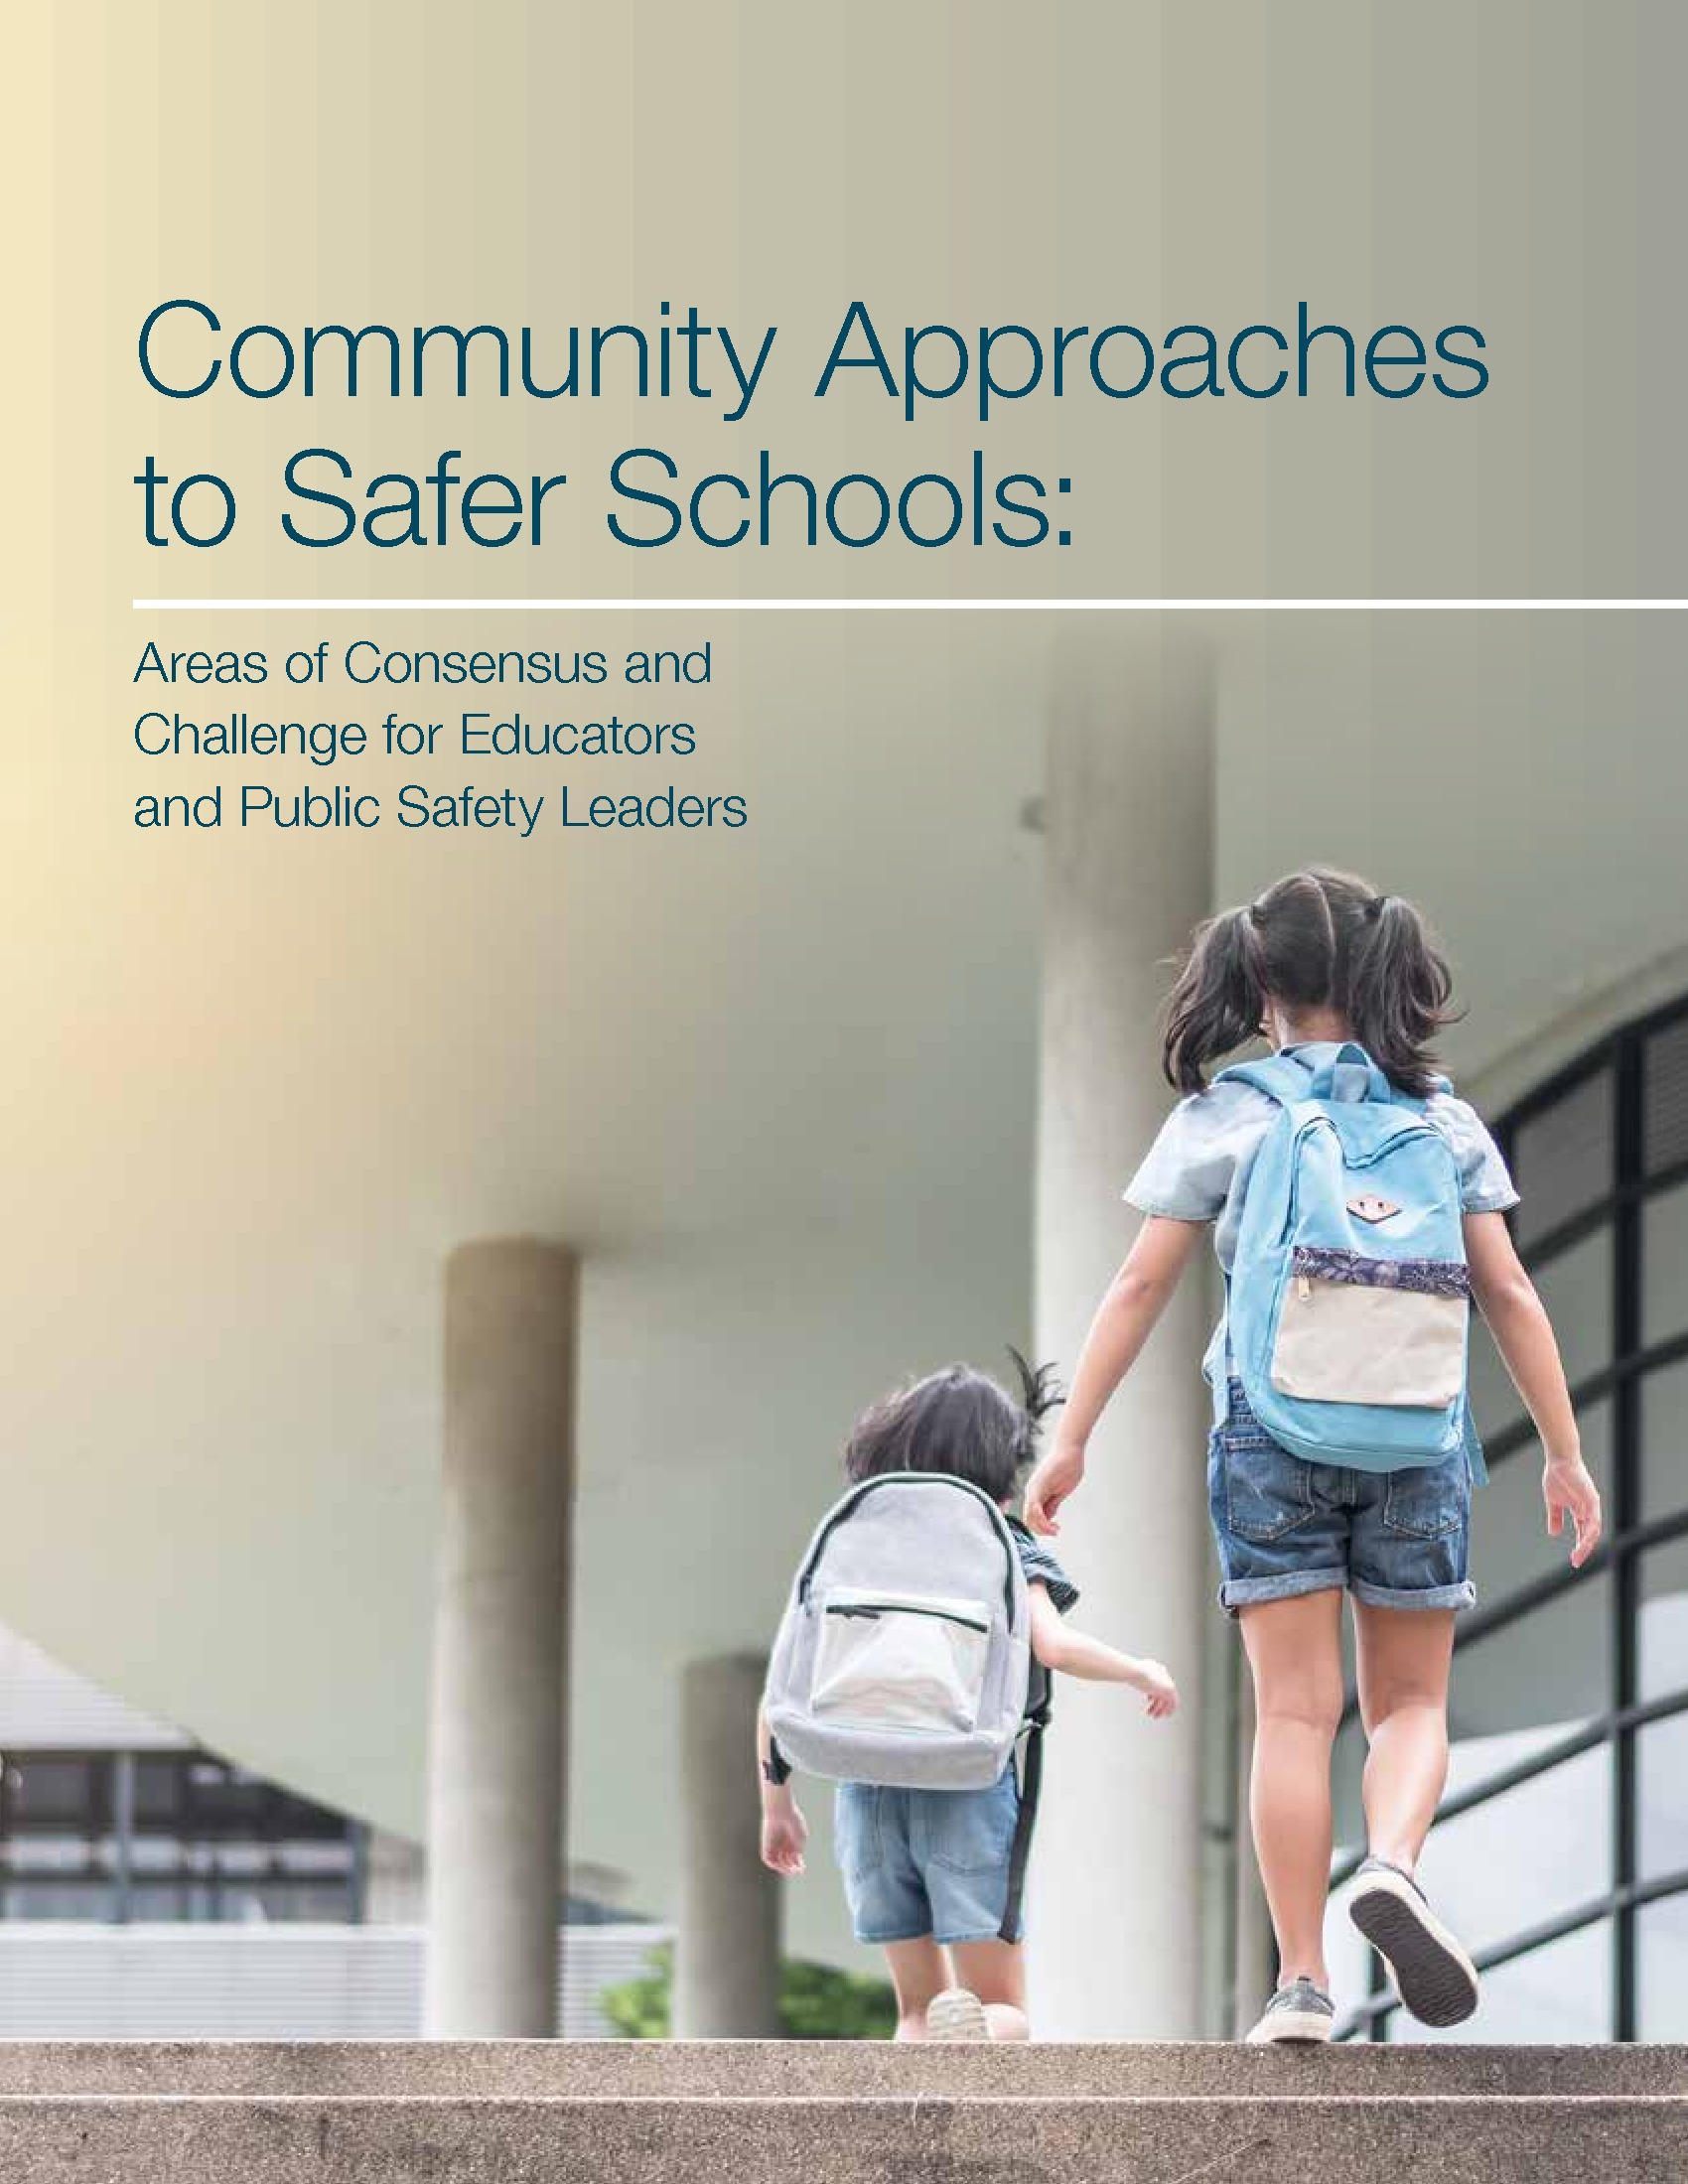 Community Approaches to Safer Schools